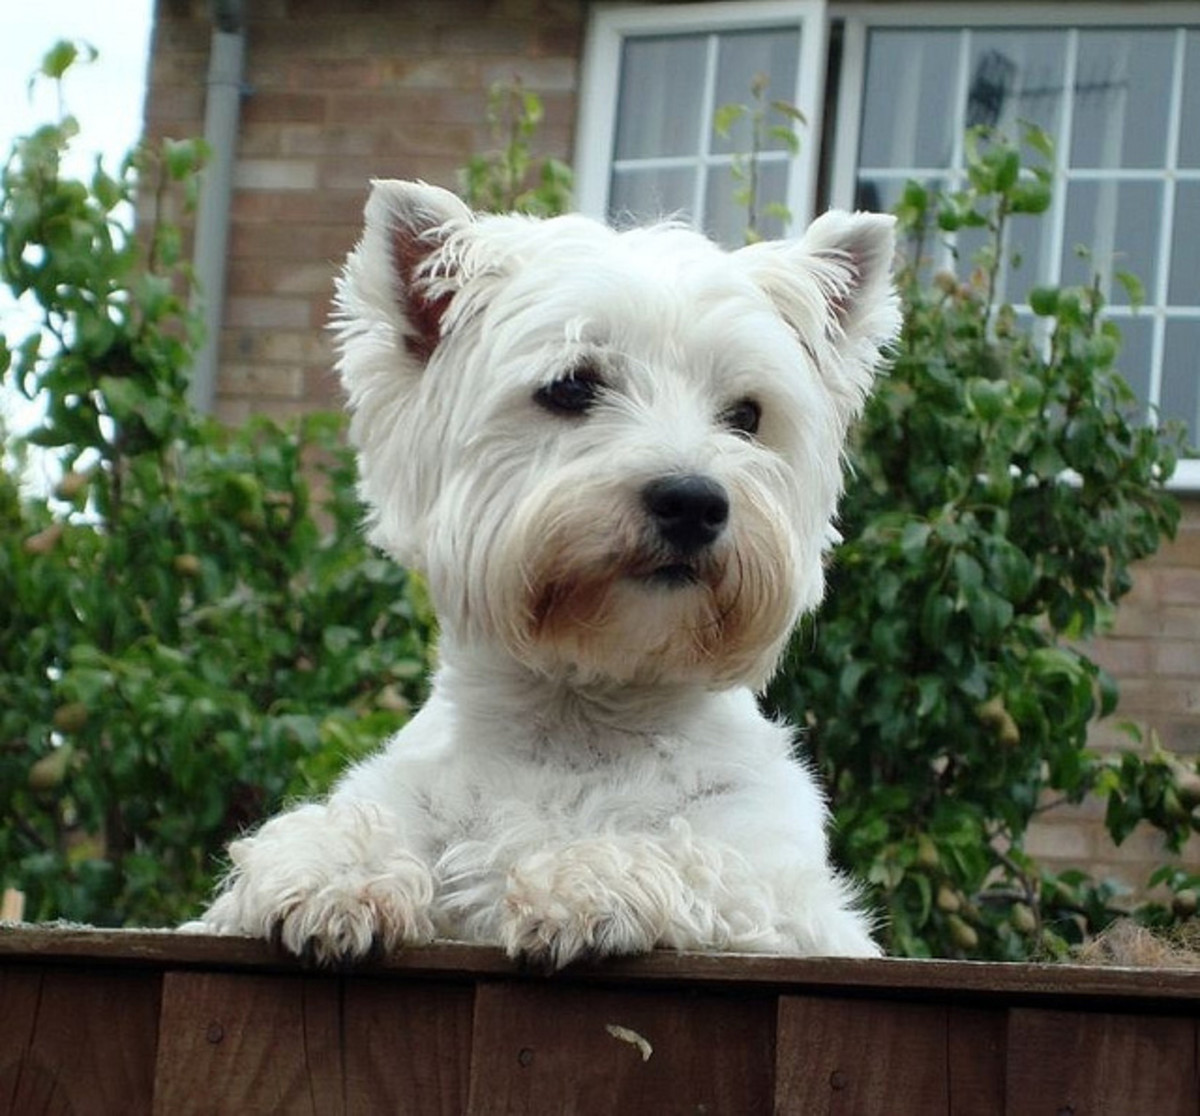 Westies are good watchdogs but can be trained to not bark excessively.